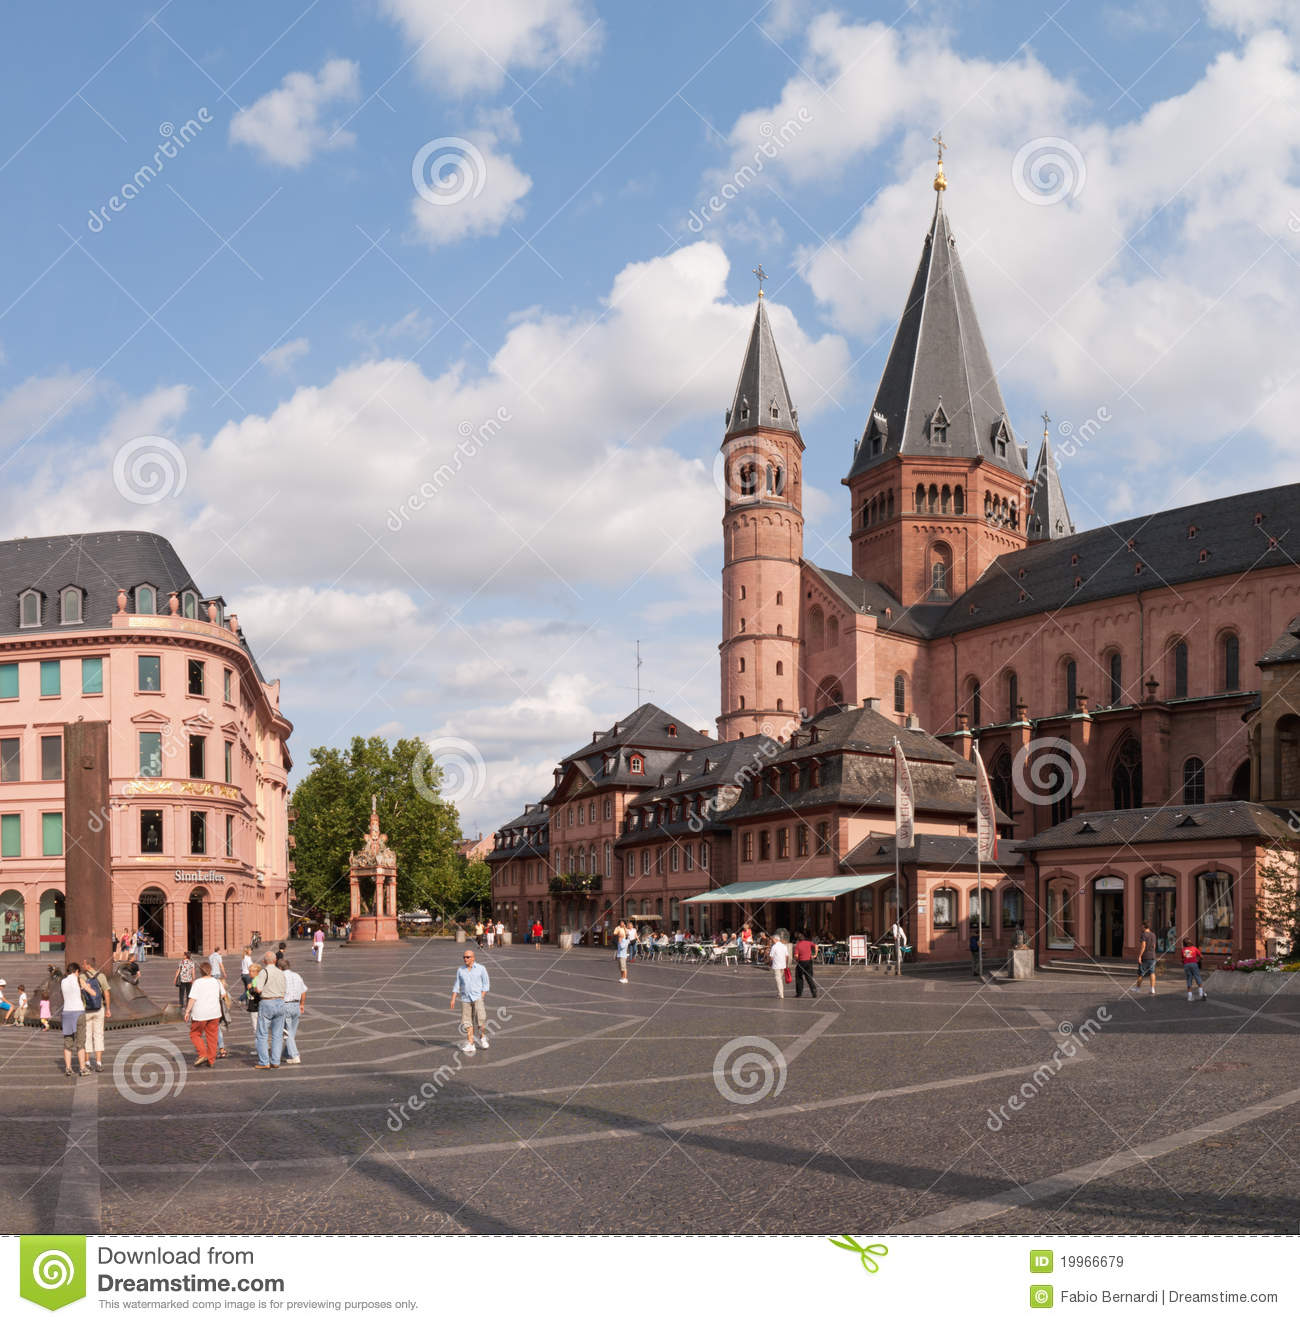 marktplatz in mainz editorial stock image image 19966679. Black Bedroom Furniture Sets. Home Design Ideas